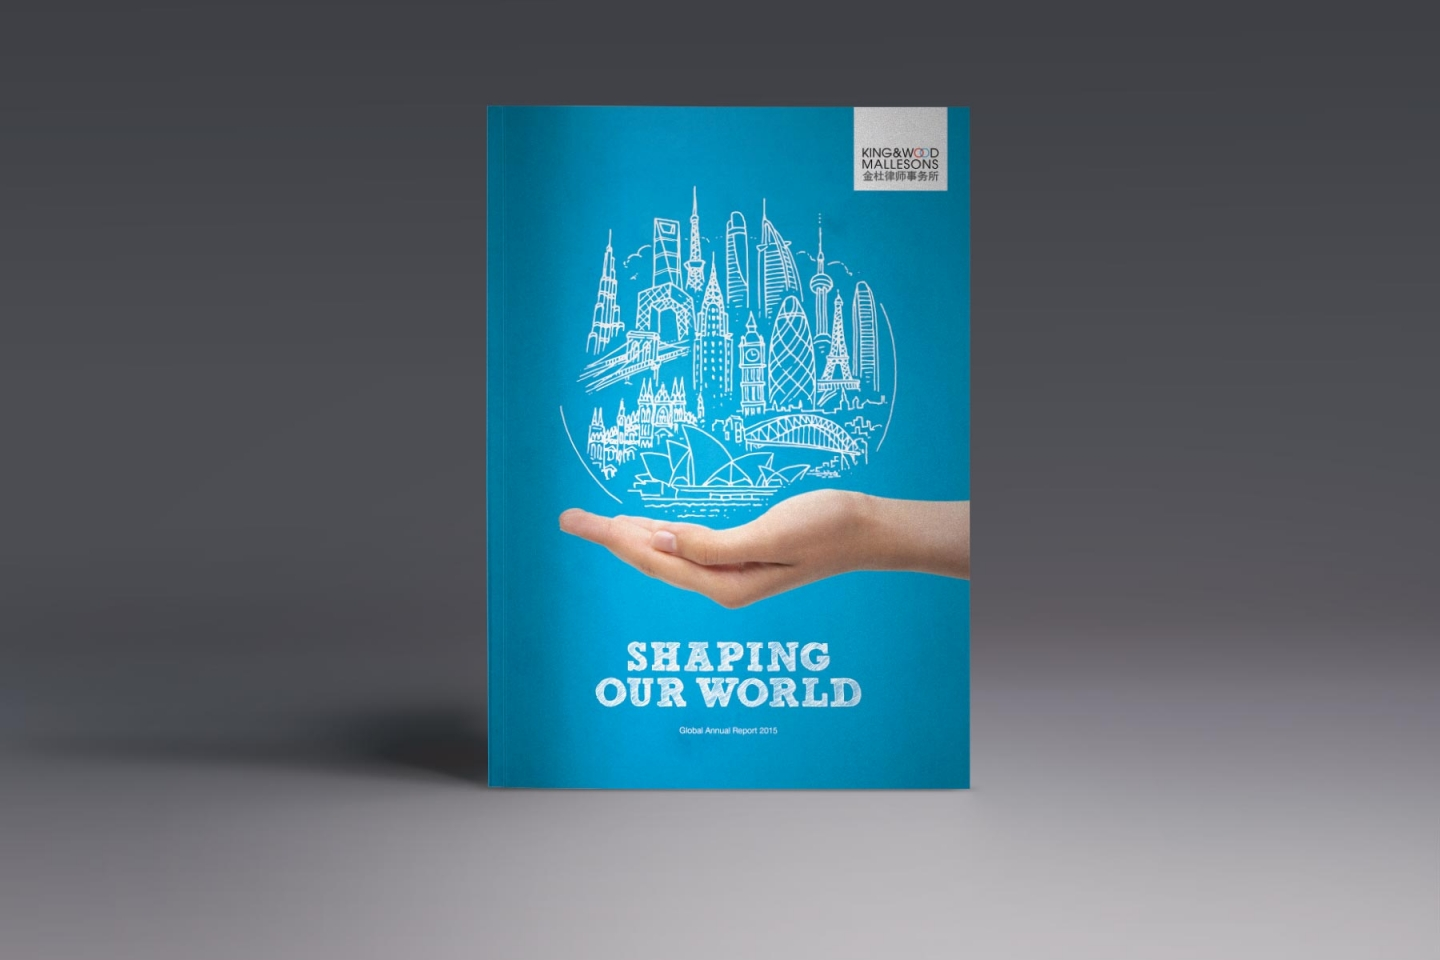 King & Wood Mallesons: Global Annual Report 2015